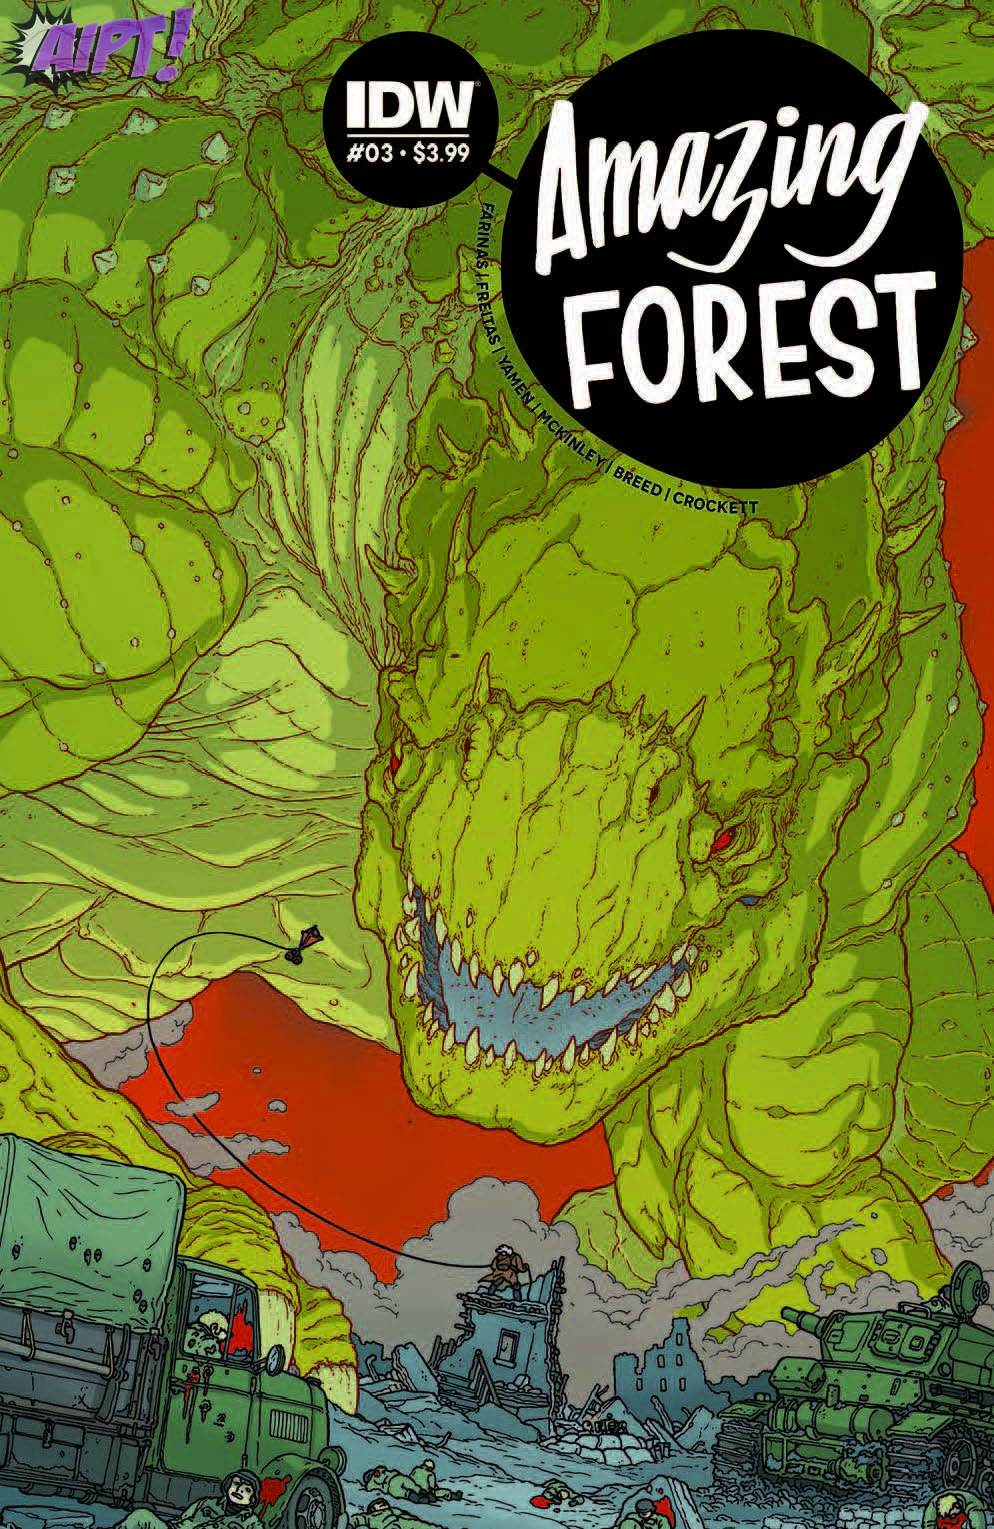 [Exclusive] IDW Preview: Amazing Forest #3